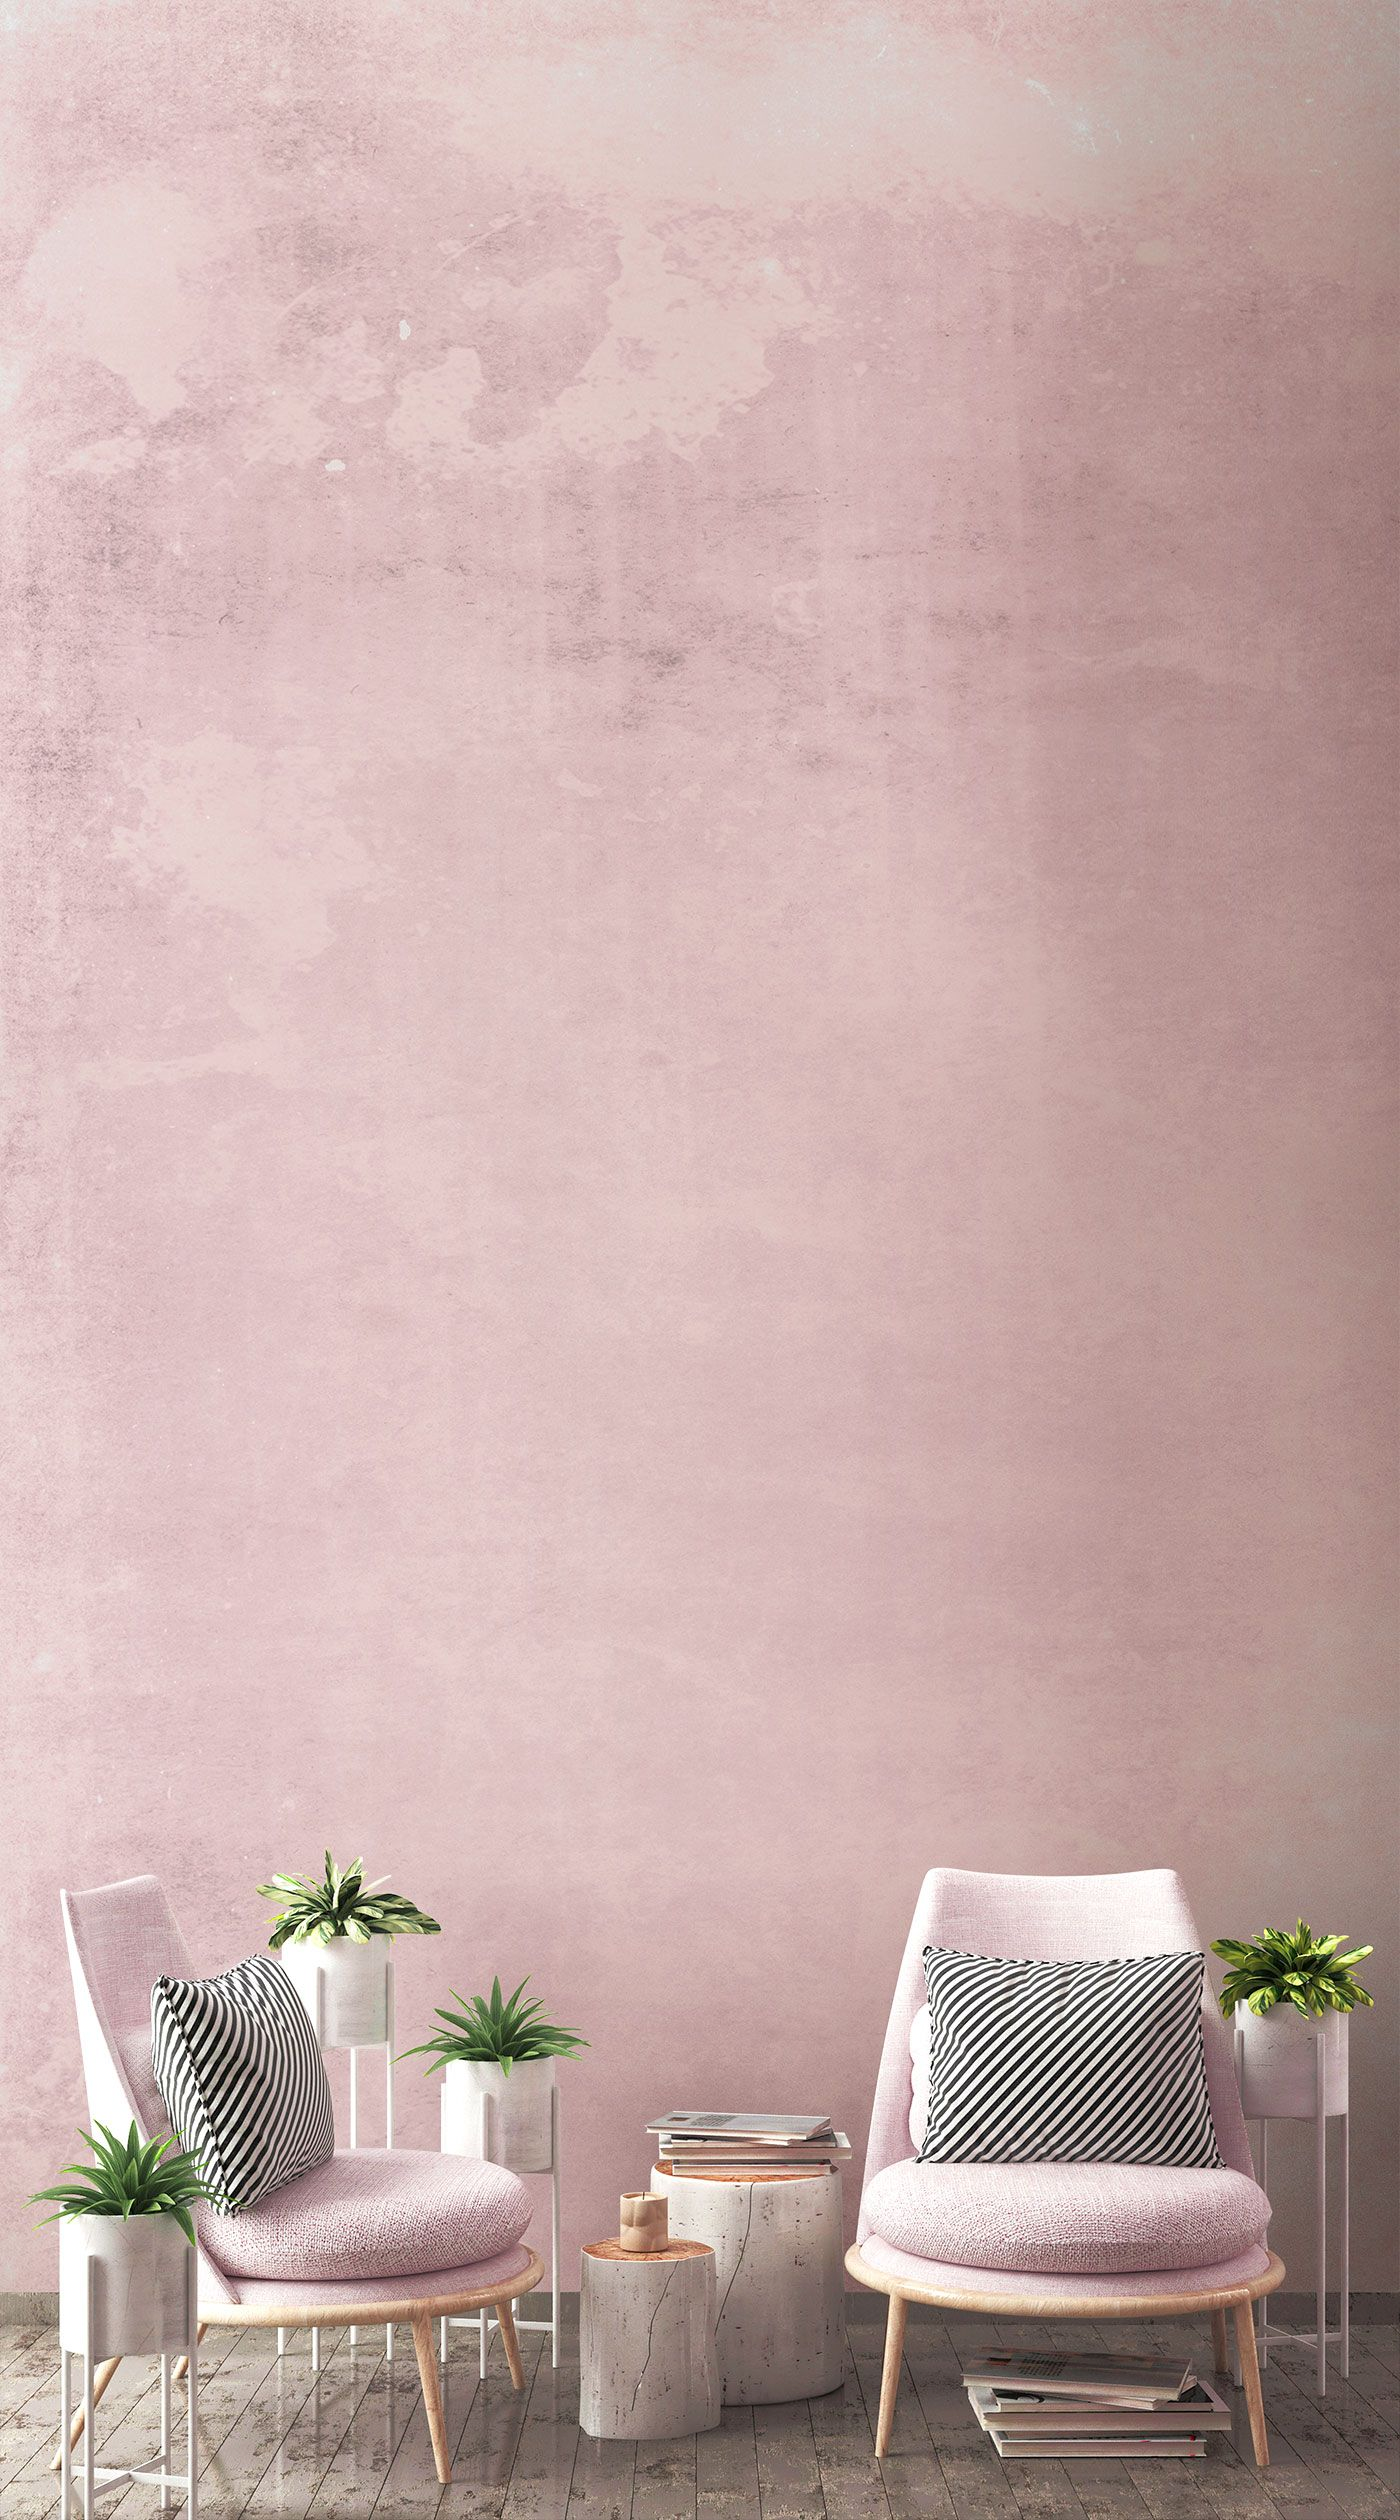 Millennial Pink Has Been One Of The Hottest Trends In The Past Year And It  Is